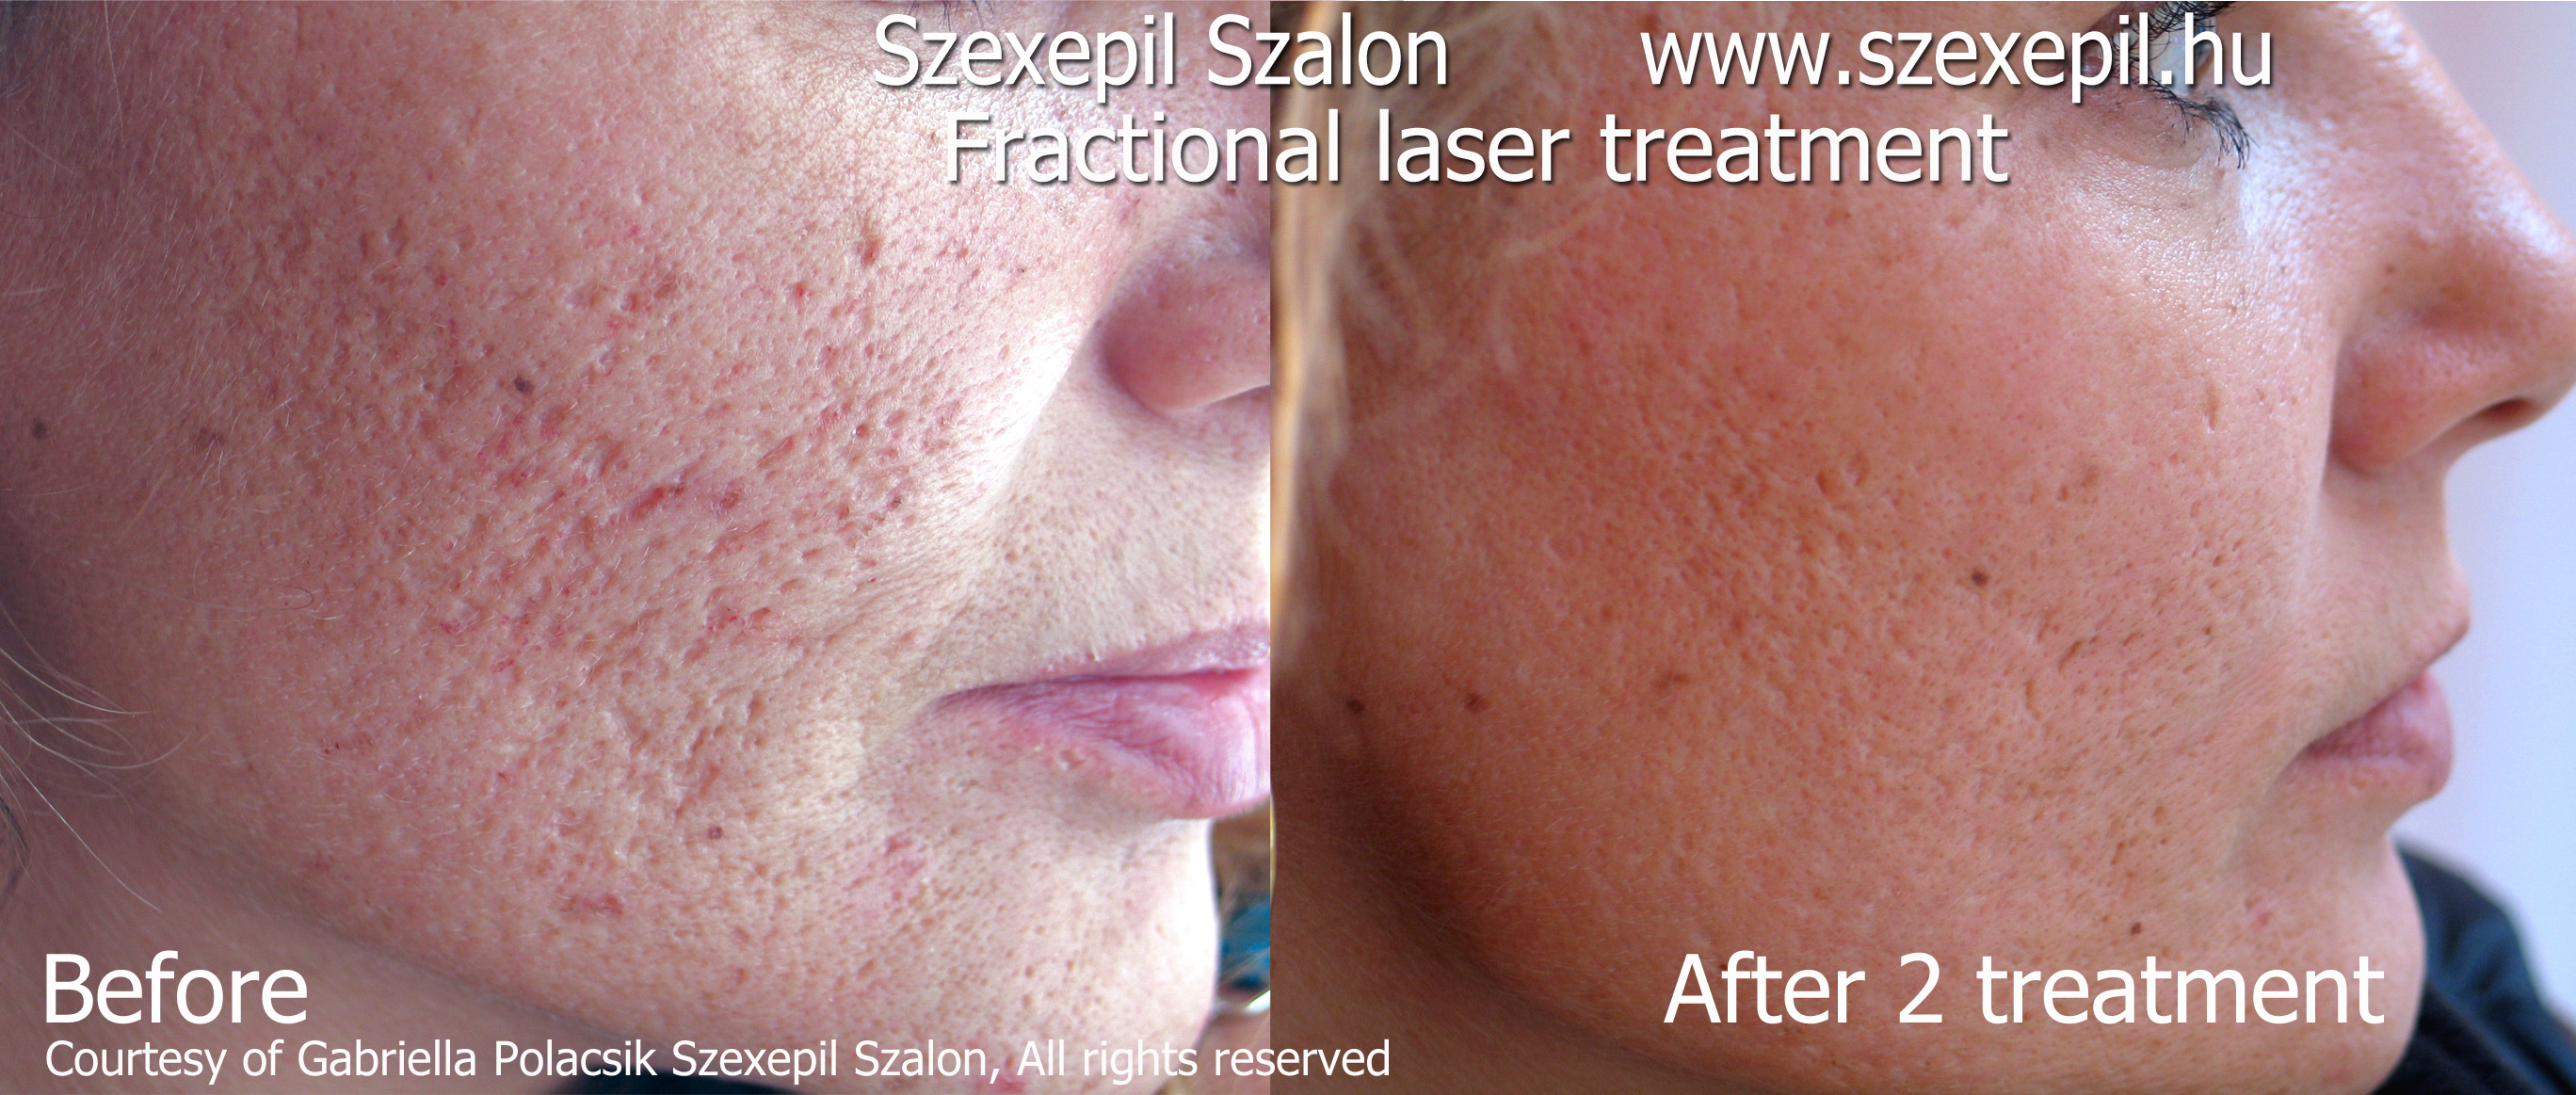 fractional laser before and after, acne scar treatment fractional laser